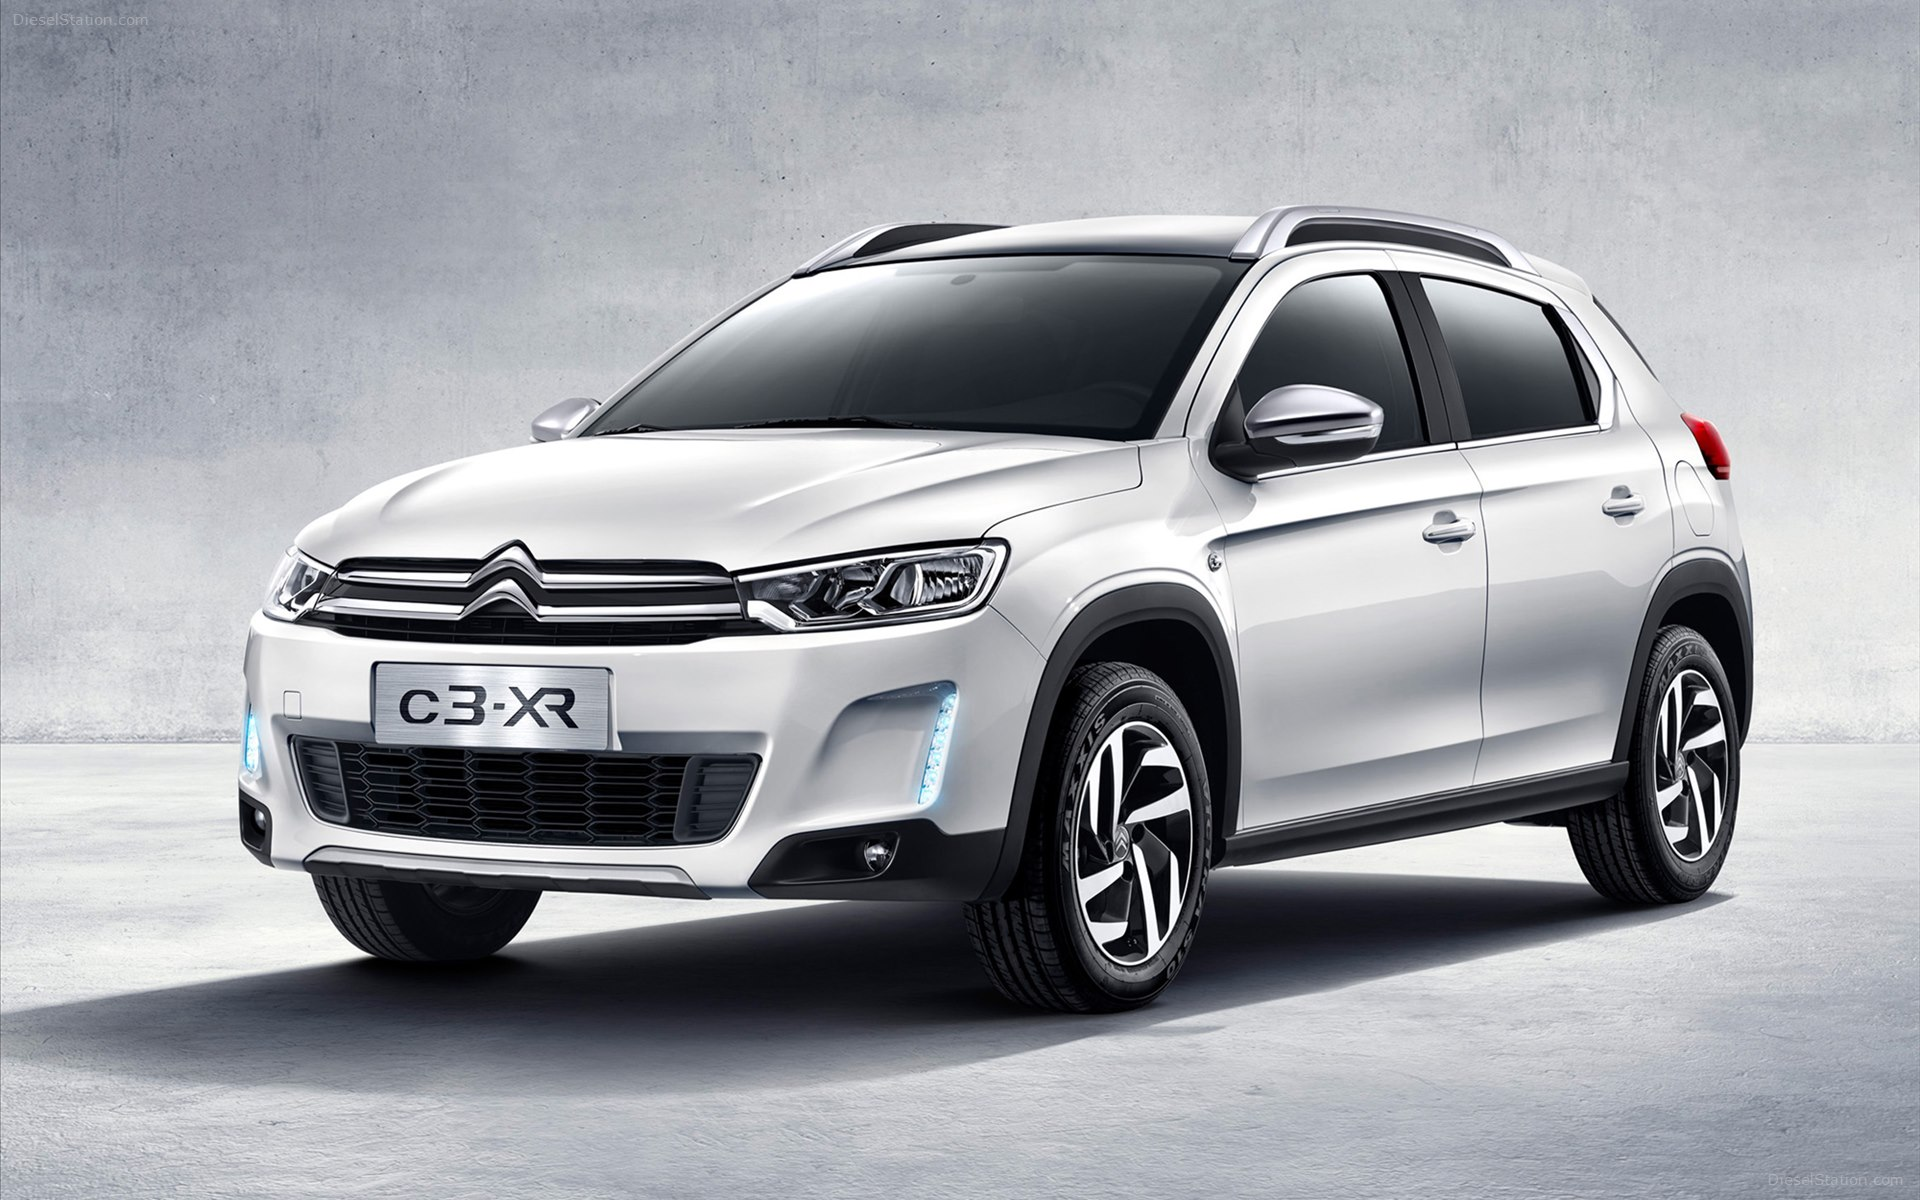 2015 citroen c3 xr crossover wallpaper hd car wallpapers. Black Bedroom Furniture Sets. Home Design Ideas